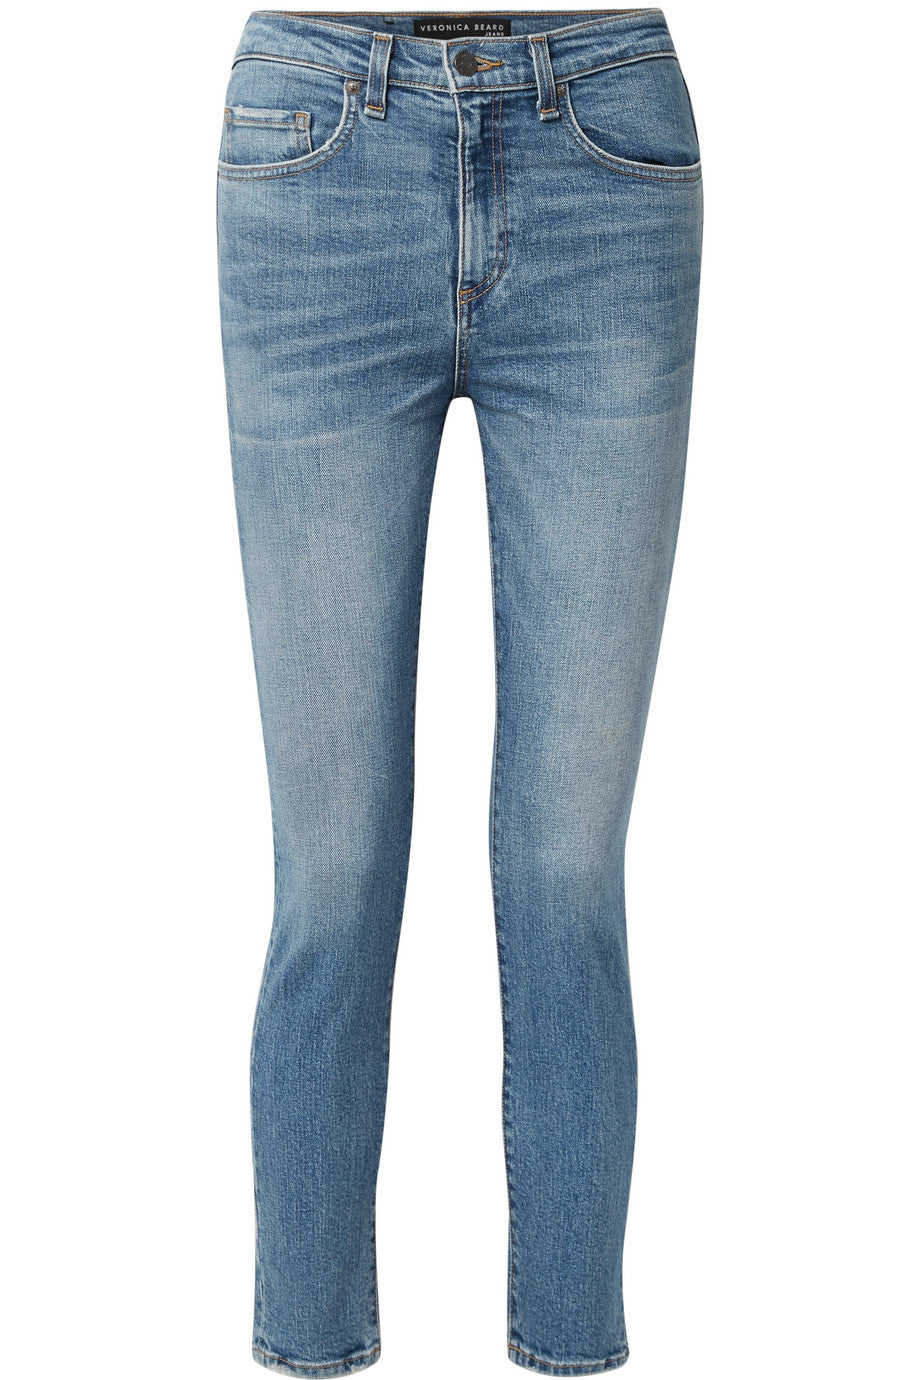 Veronica Beard - Blue high waisted jeans featured in Capsule wardrobe on ownmuse.com